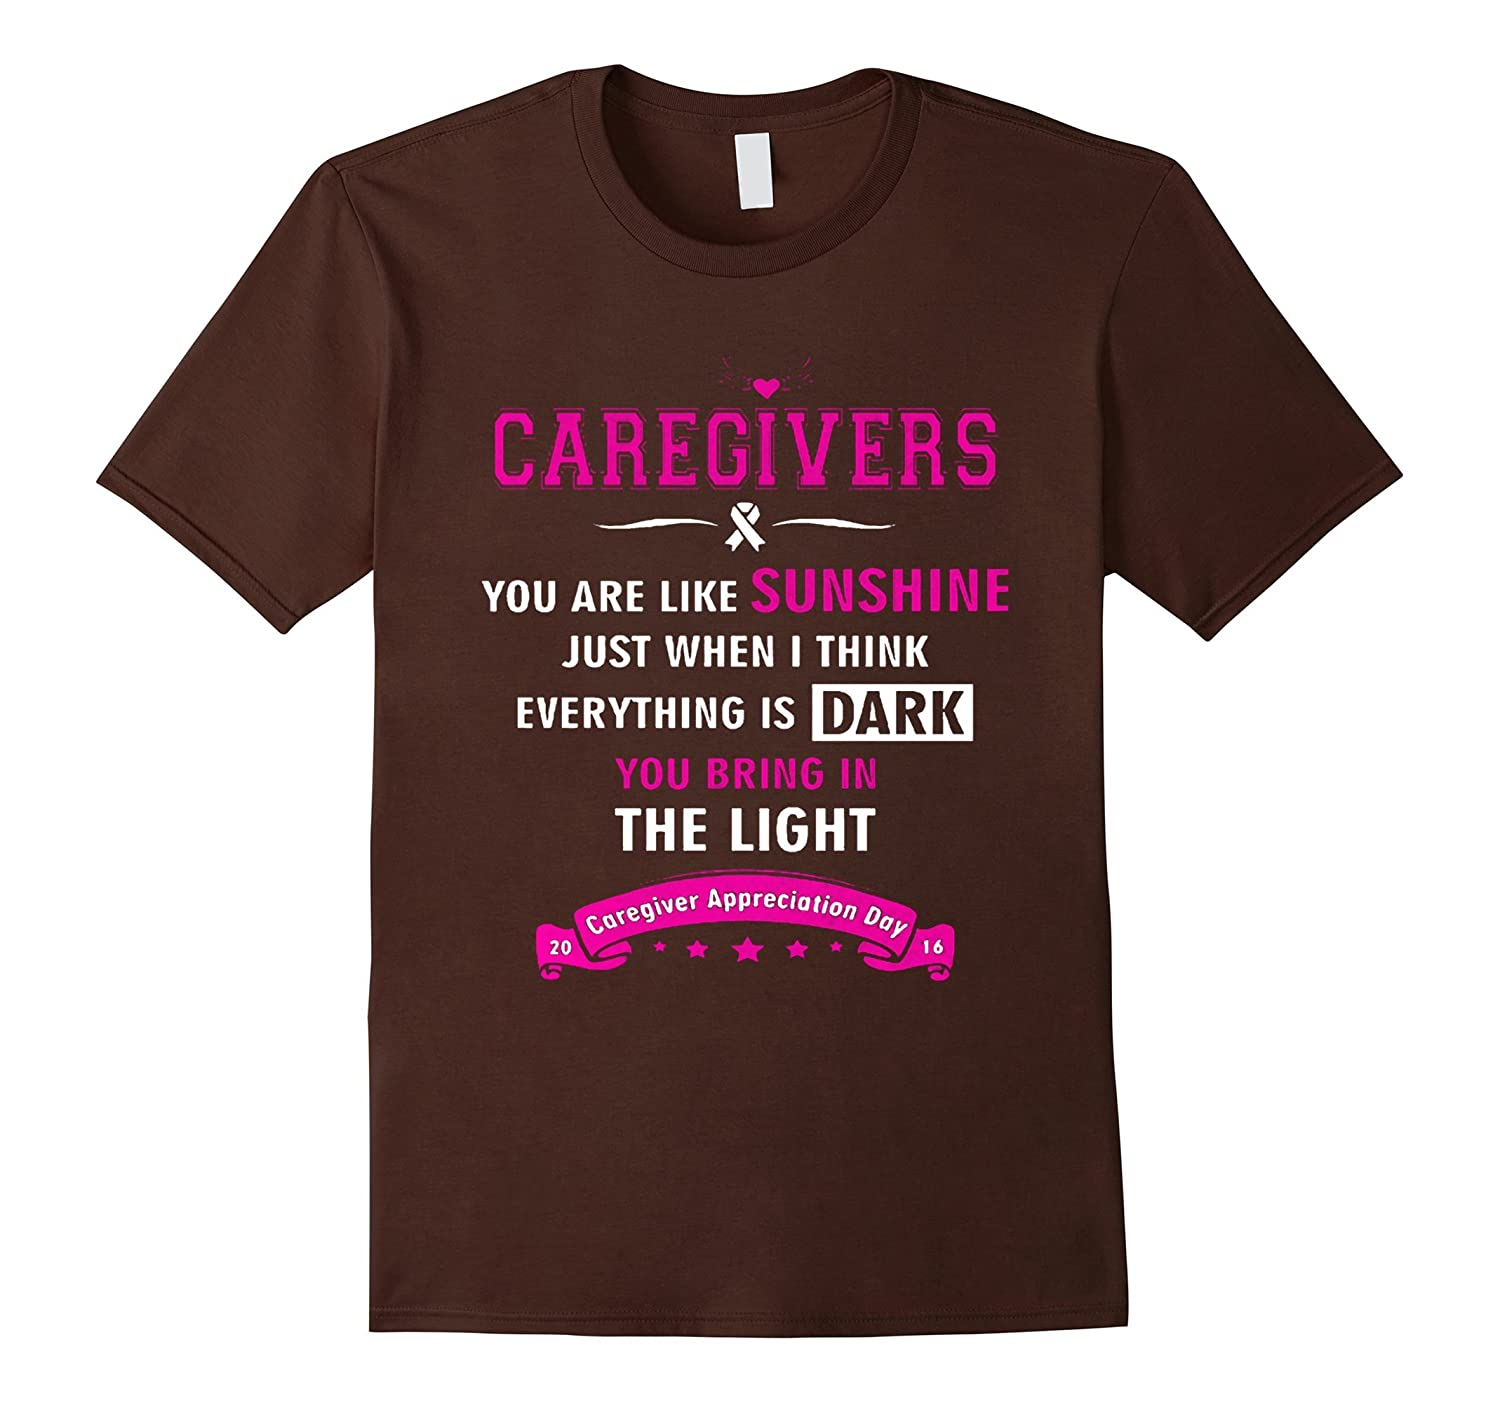 Caregivers - you are like Sunshire you bring light t shirt-CL